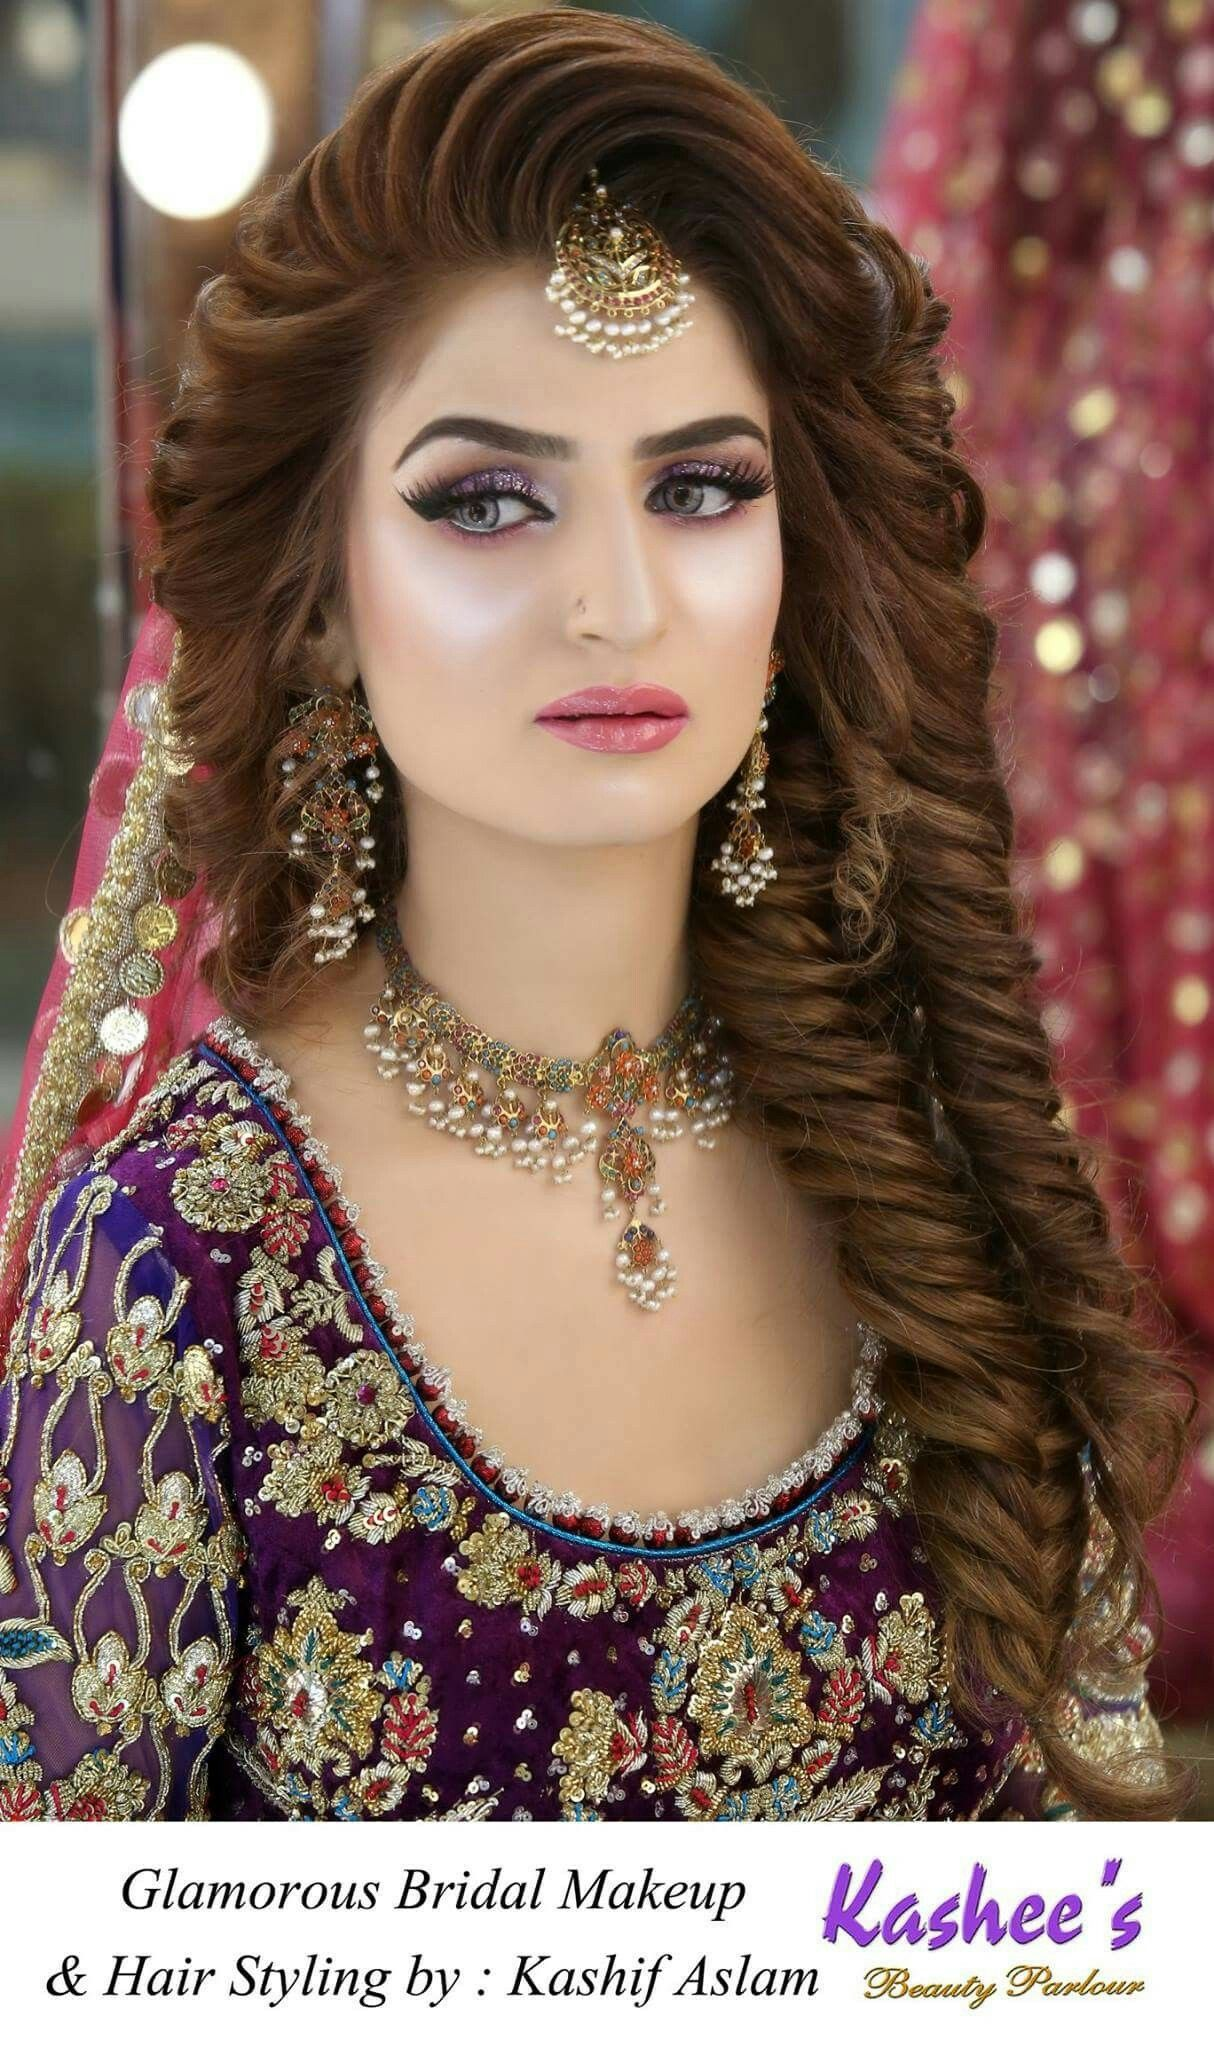 makeup hair style video make up amp hair styling bridals bridal 8573 | 9791fdca57e96f91ede9fc361e094f61